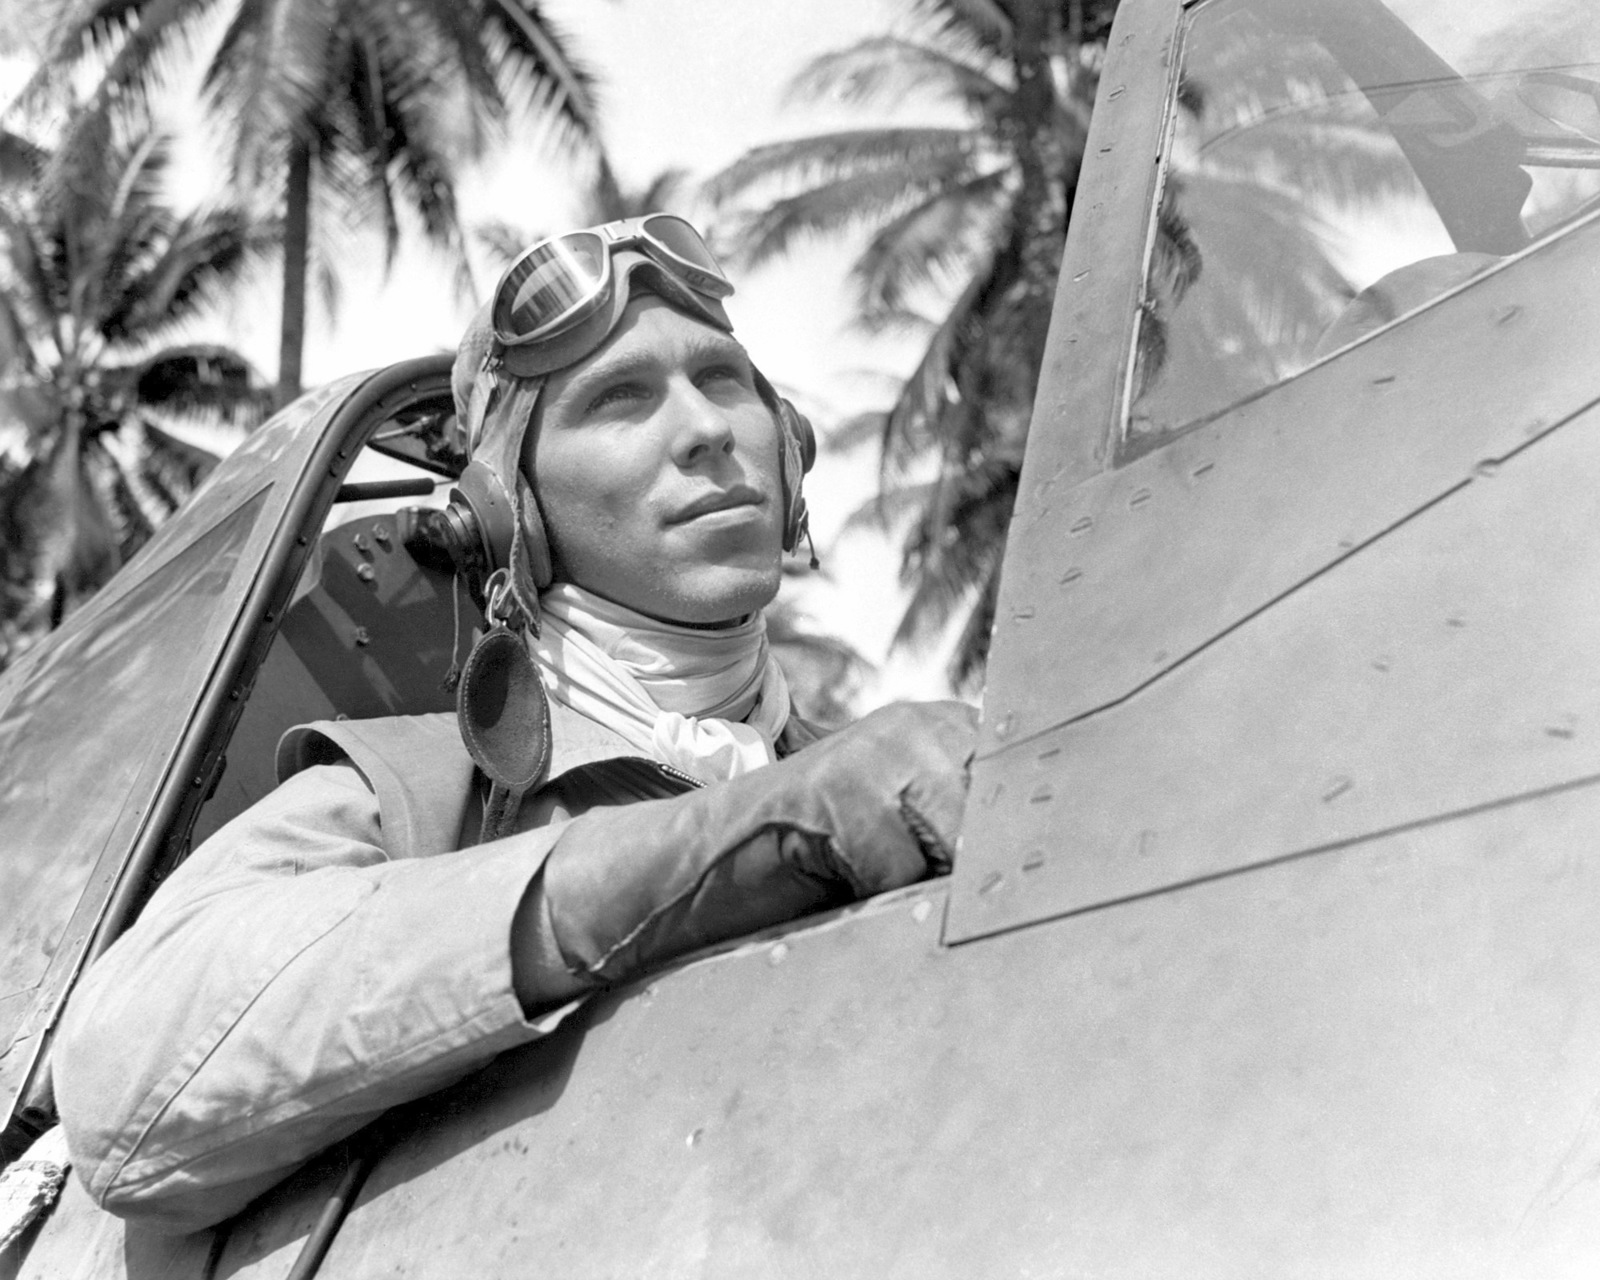 "World War II (WWII) era photograph of US Marine Corps (USMC) First Lieutenant (1LT) Frank B. Baldwin, taken at Russell Islands July 3, 1943 as he sits in the cockpit of a USMC F4U""CORSAIR""aircraft. 1LT Baldwin is an Ace Pilot credited with 10 kills"